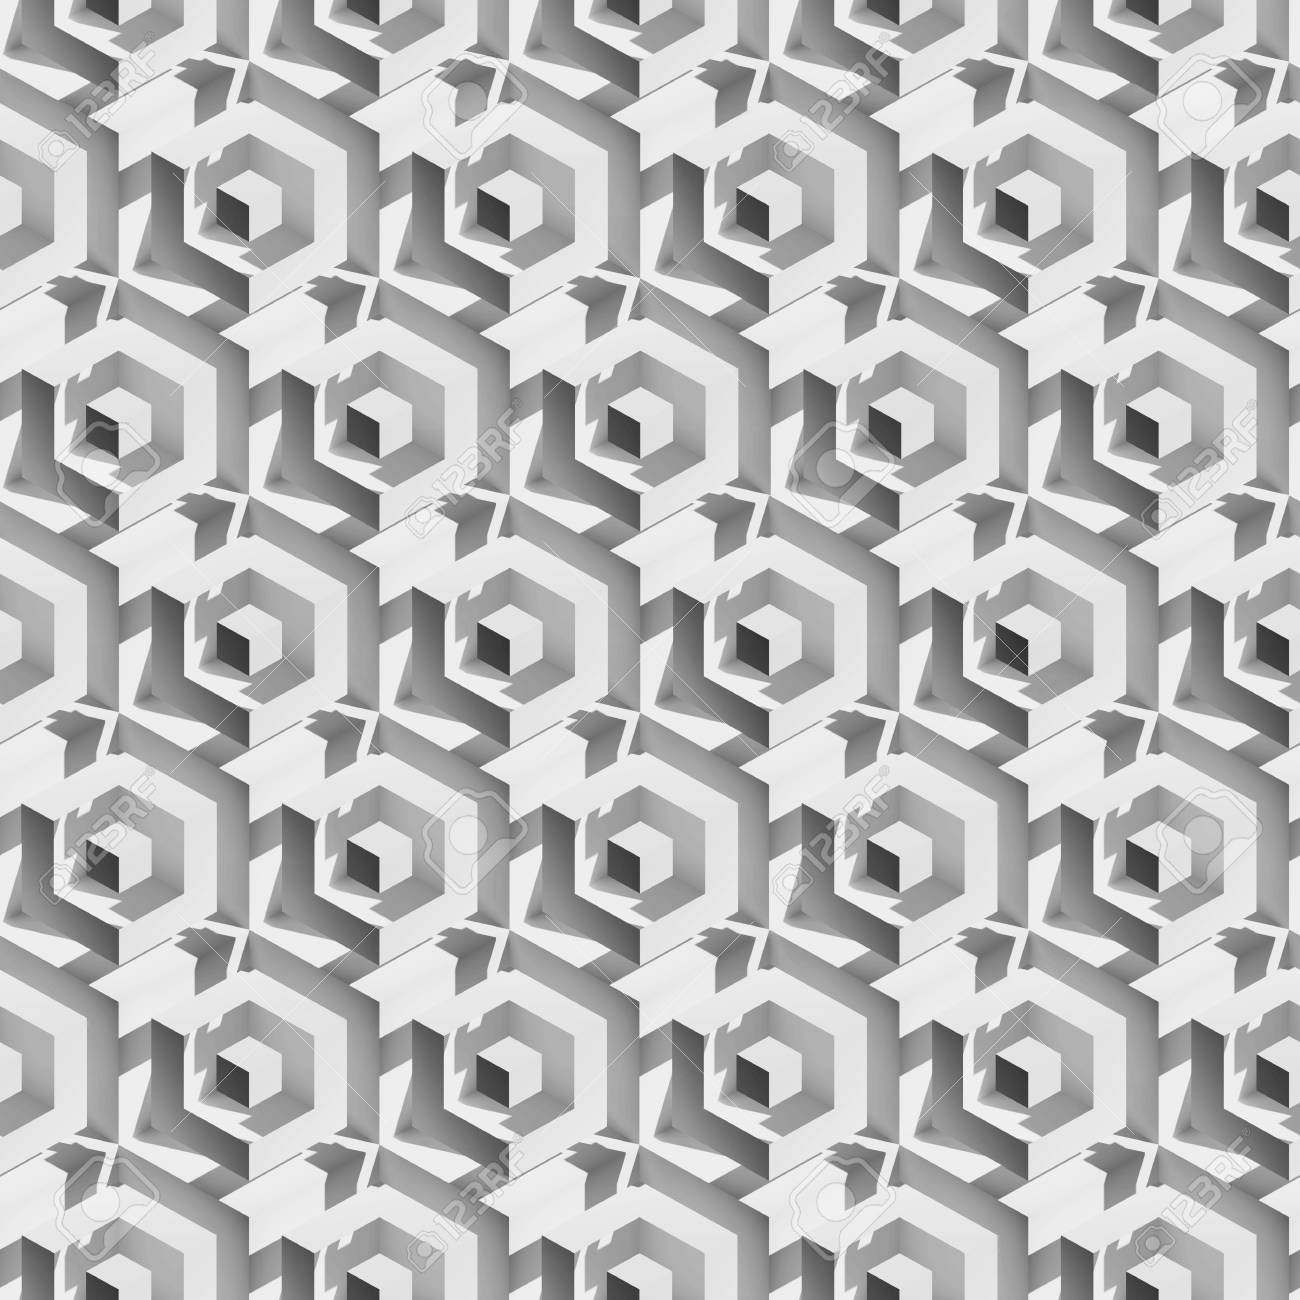 Volume realistic unreal texture, gray cubes, 3d geometric pattern,